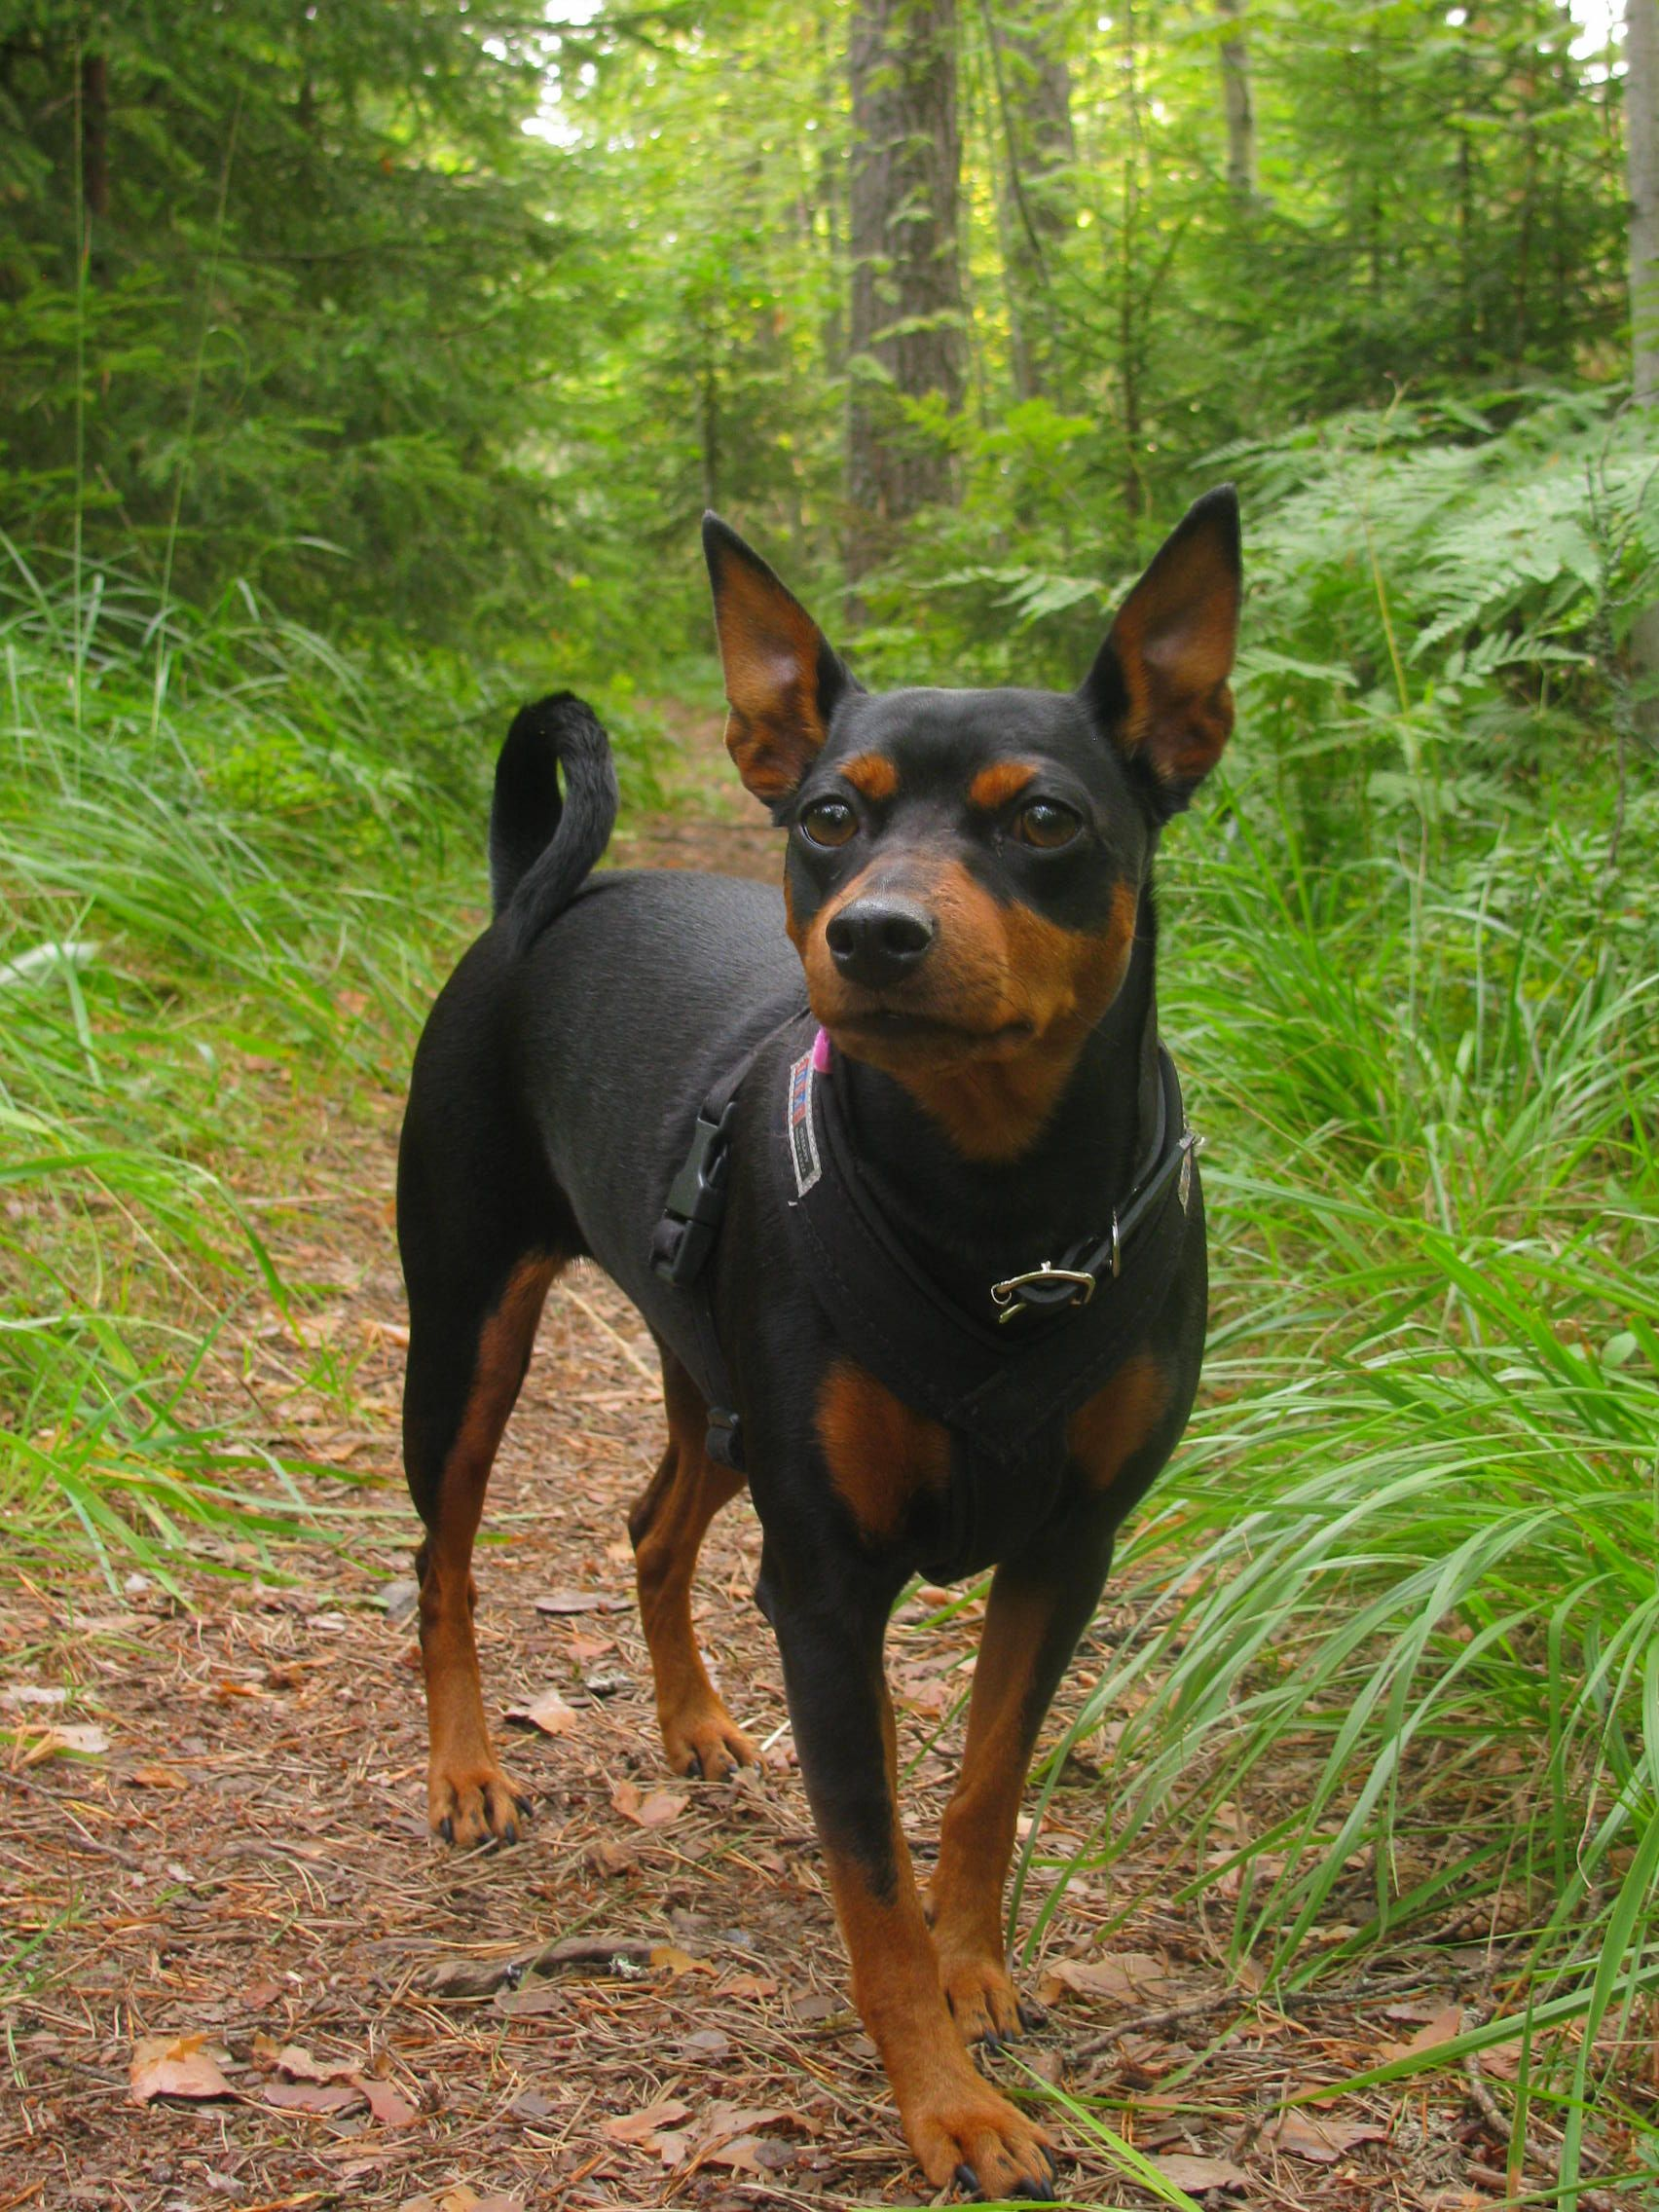 Hiking In The Woods Doggy Miniature Pinscher Min Pin